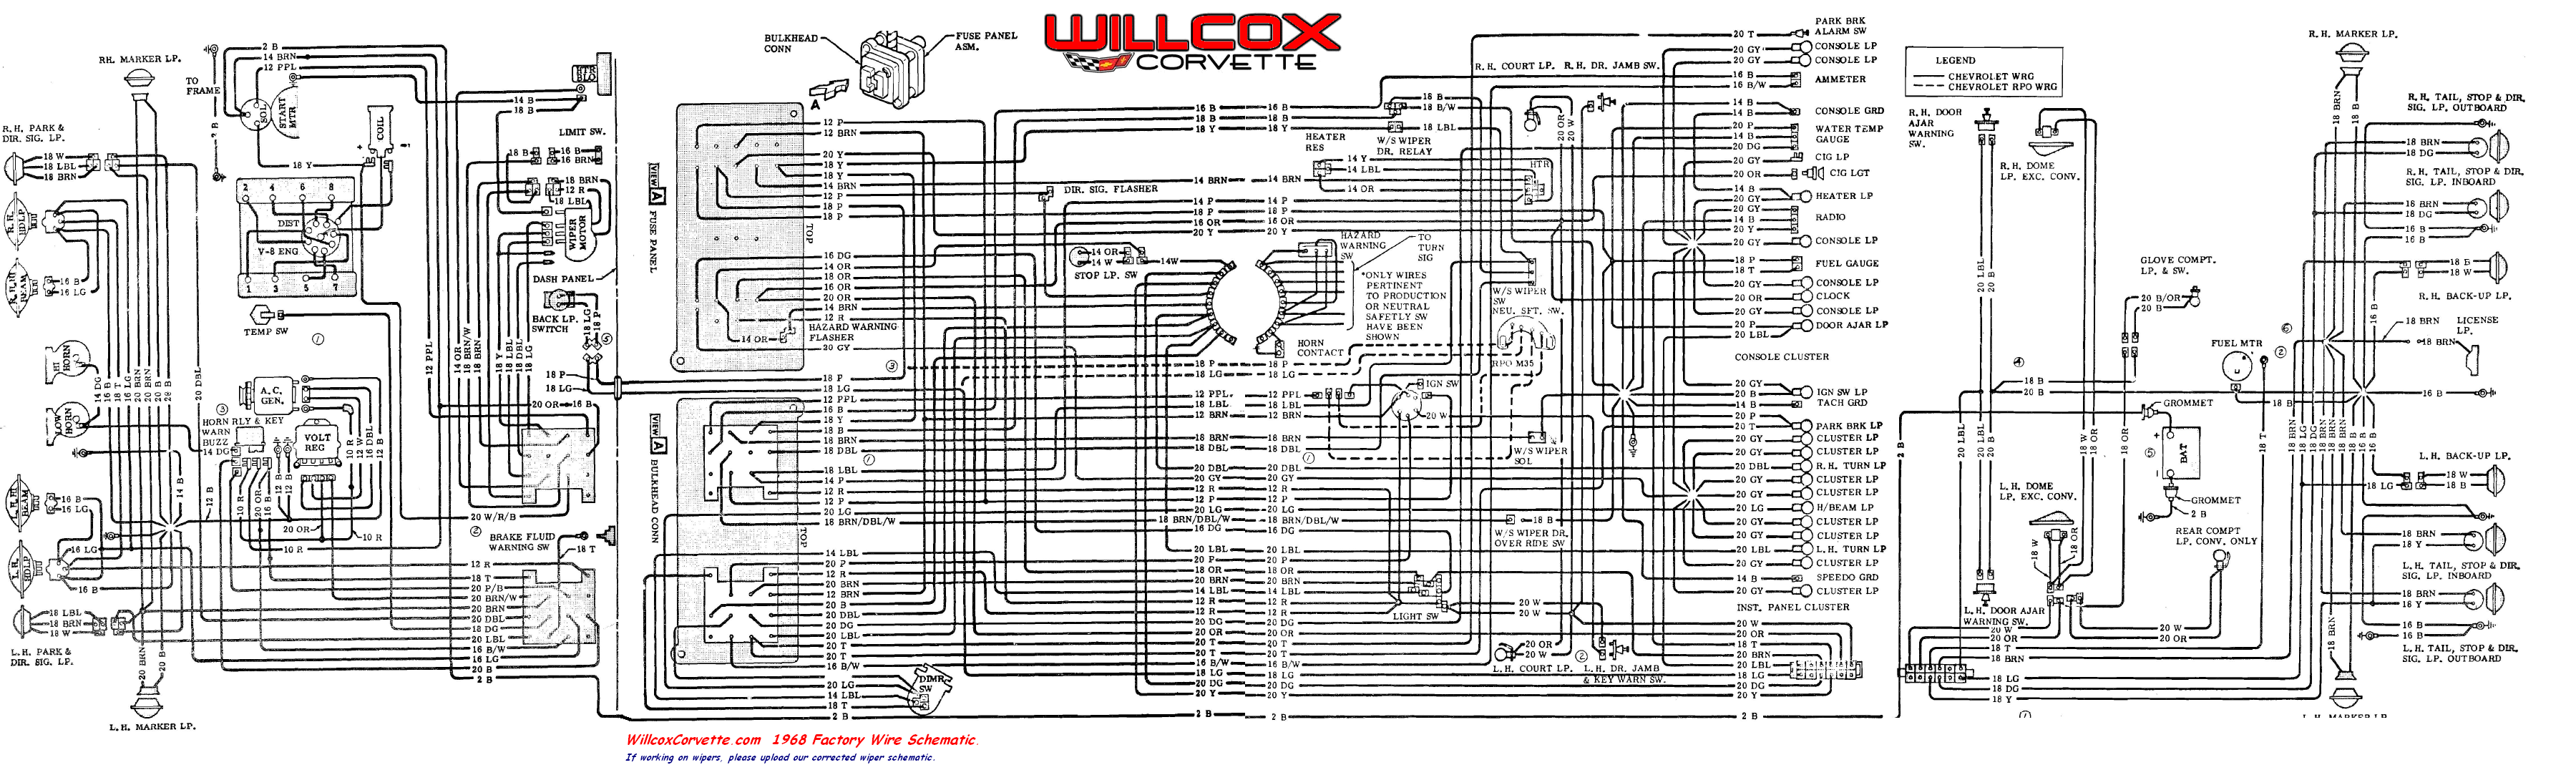 1968 Corvette Wiring Diagram Wiring Diagram View A View A Zaafran It